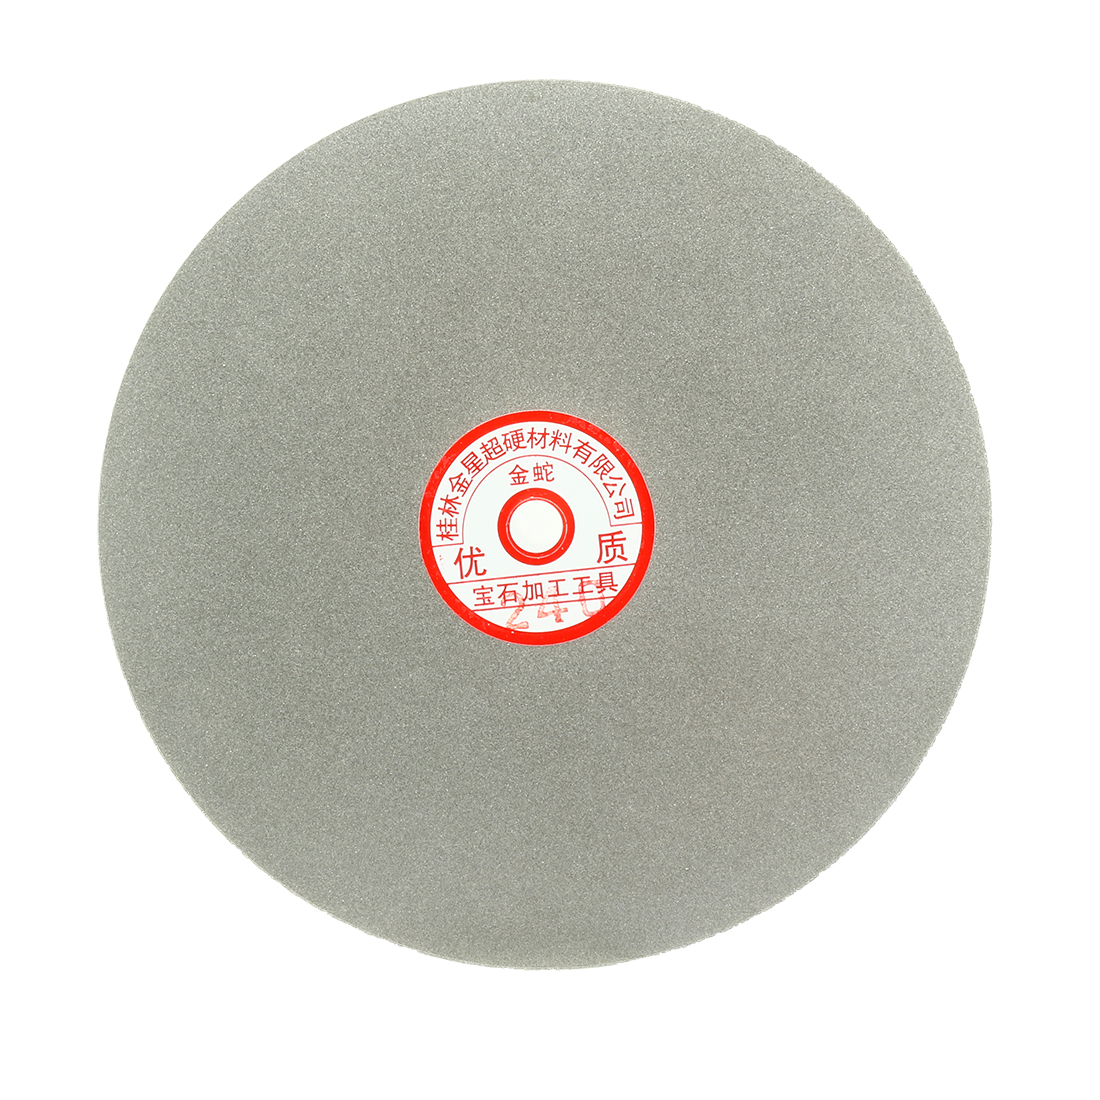 200mm 8-inch Grit 240 Diamond Coated Flat Lap Disk Wheel Grinding Sanding Disc